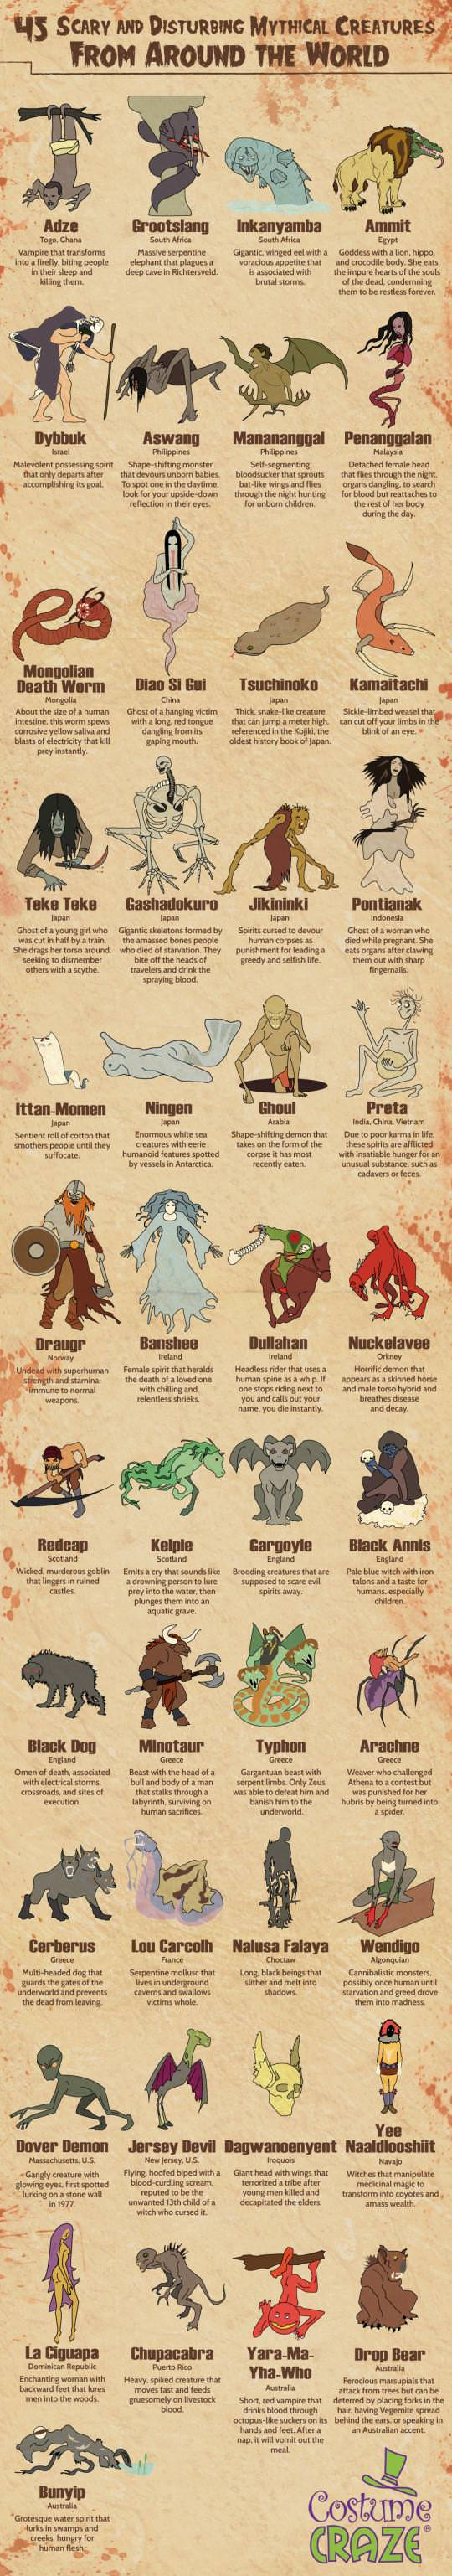 Scary and Disturbing Mythical Creatures from Around the World #infographic http://bit.ly/2mvUxoF